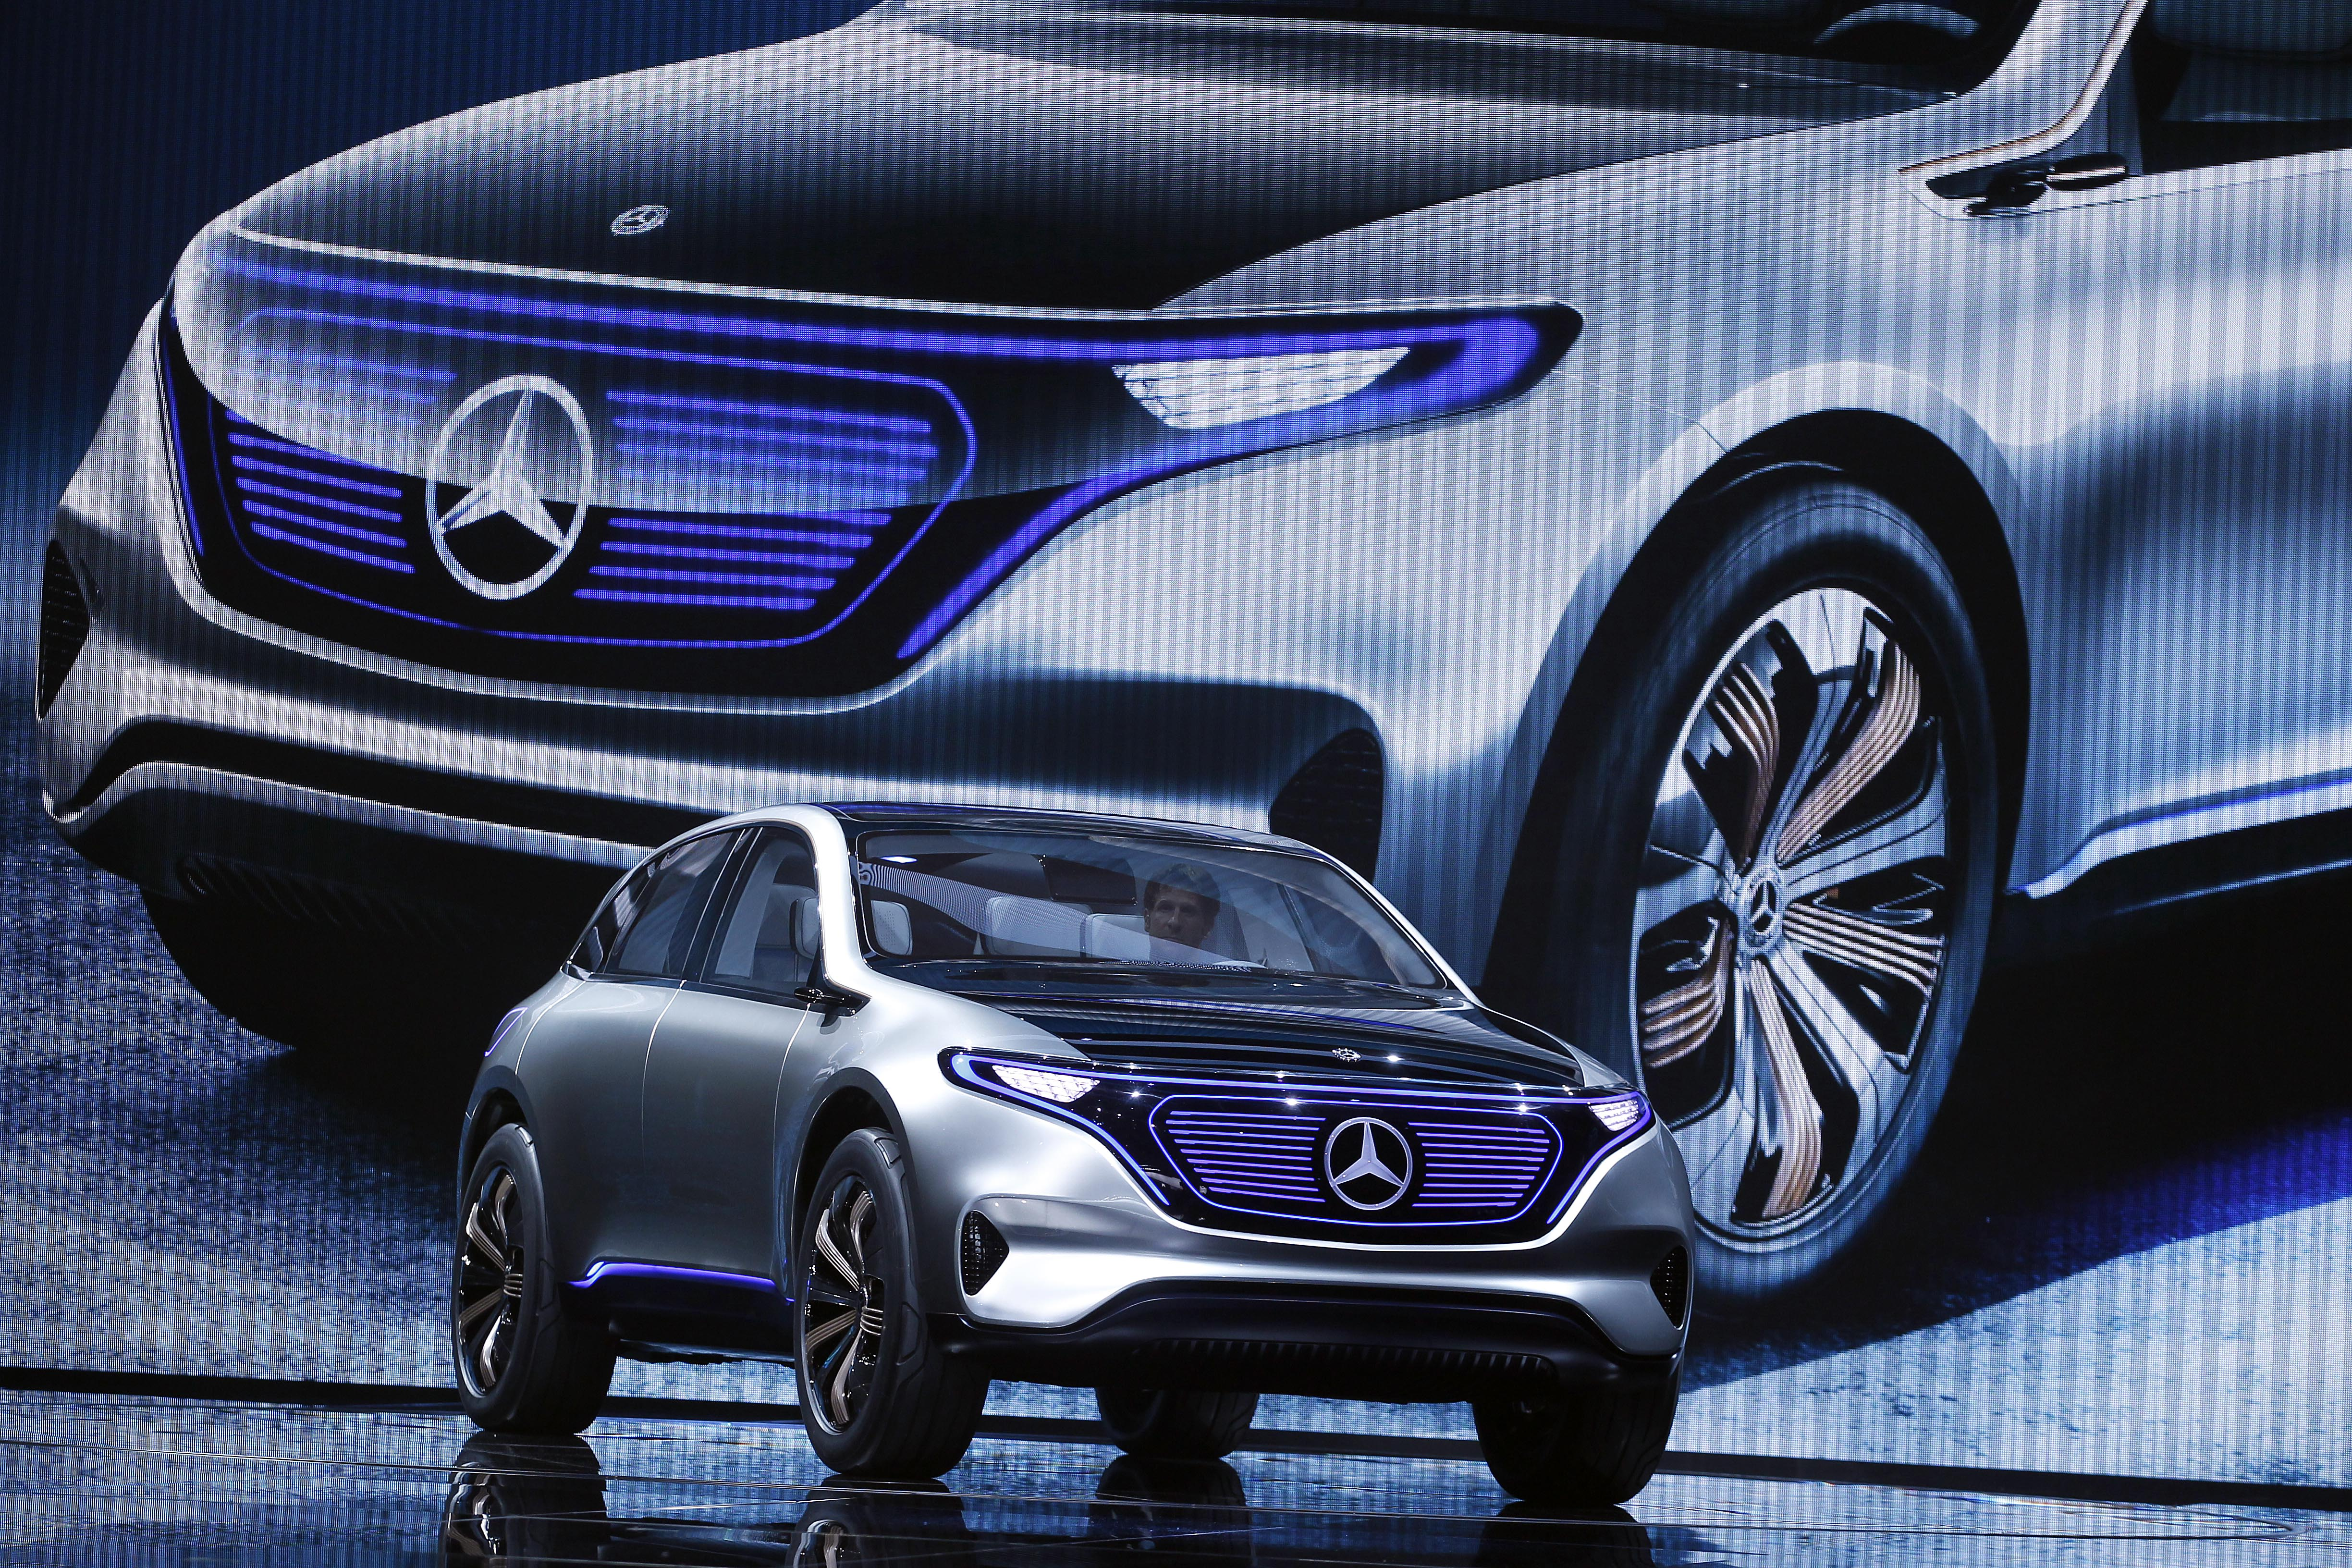 Dieter Zetsche, chief executive officer of Daimler AG, speaks on stage as he presents a new Mercedes-Benz Generation EQ concept sport-utility vehicle (SUV) during the 2016 press day of the Paris Motor Show.